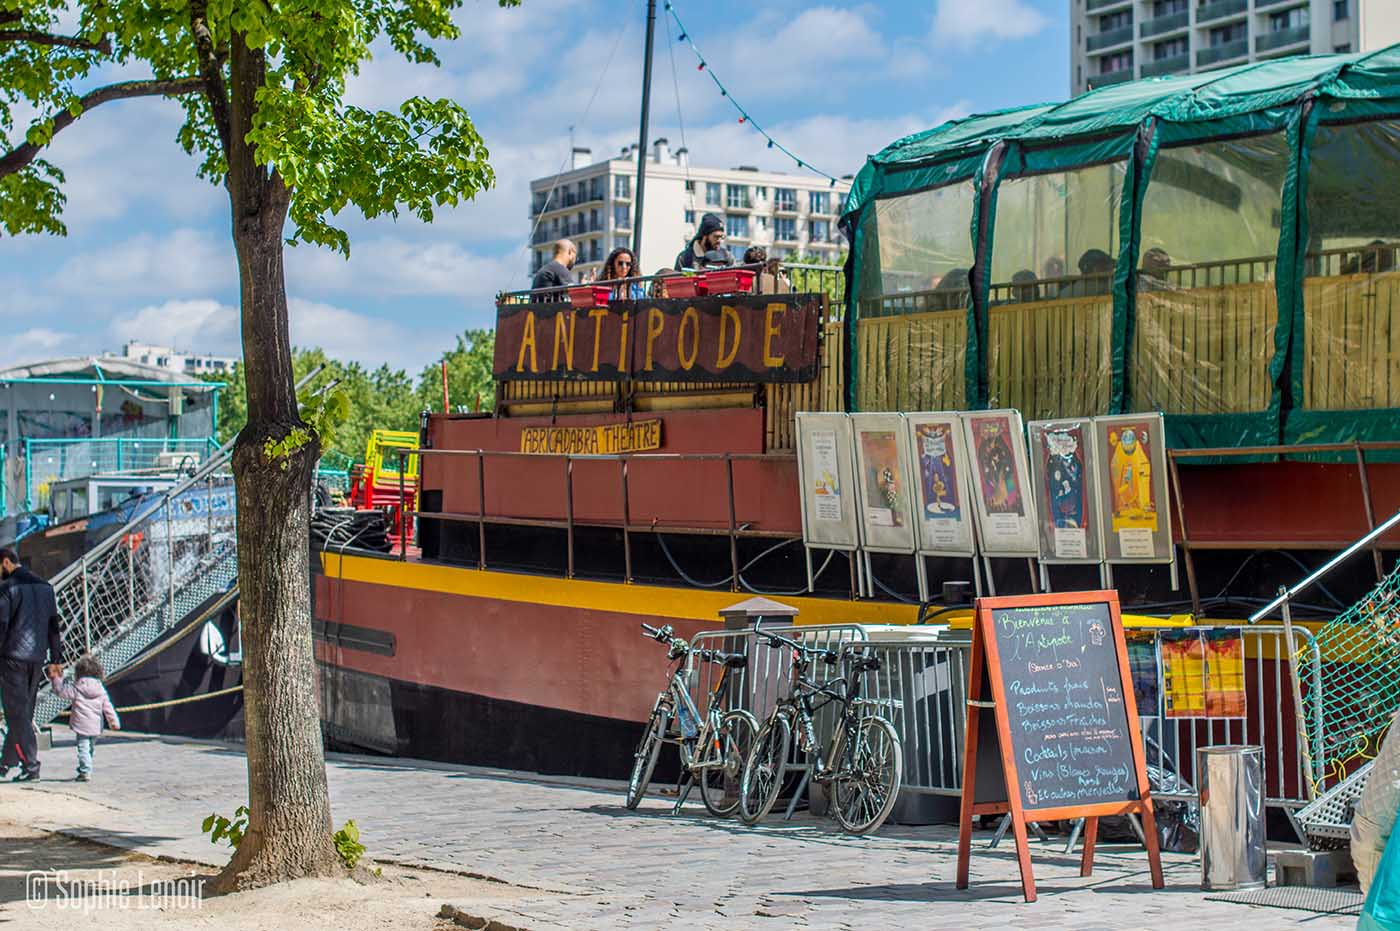 Antipode, bar on a boat